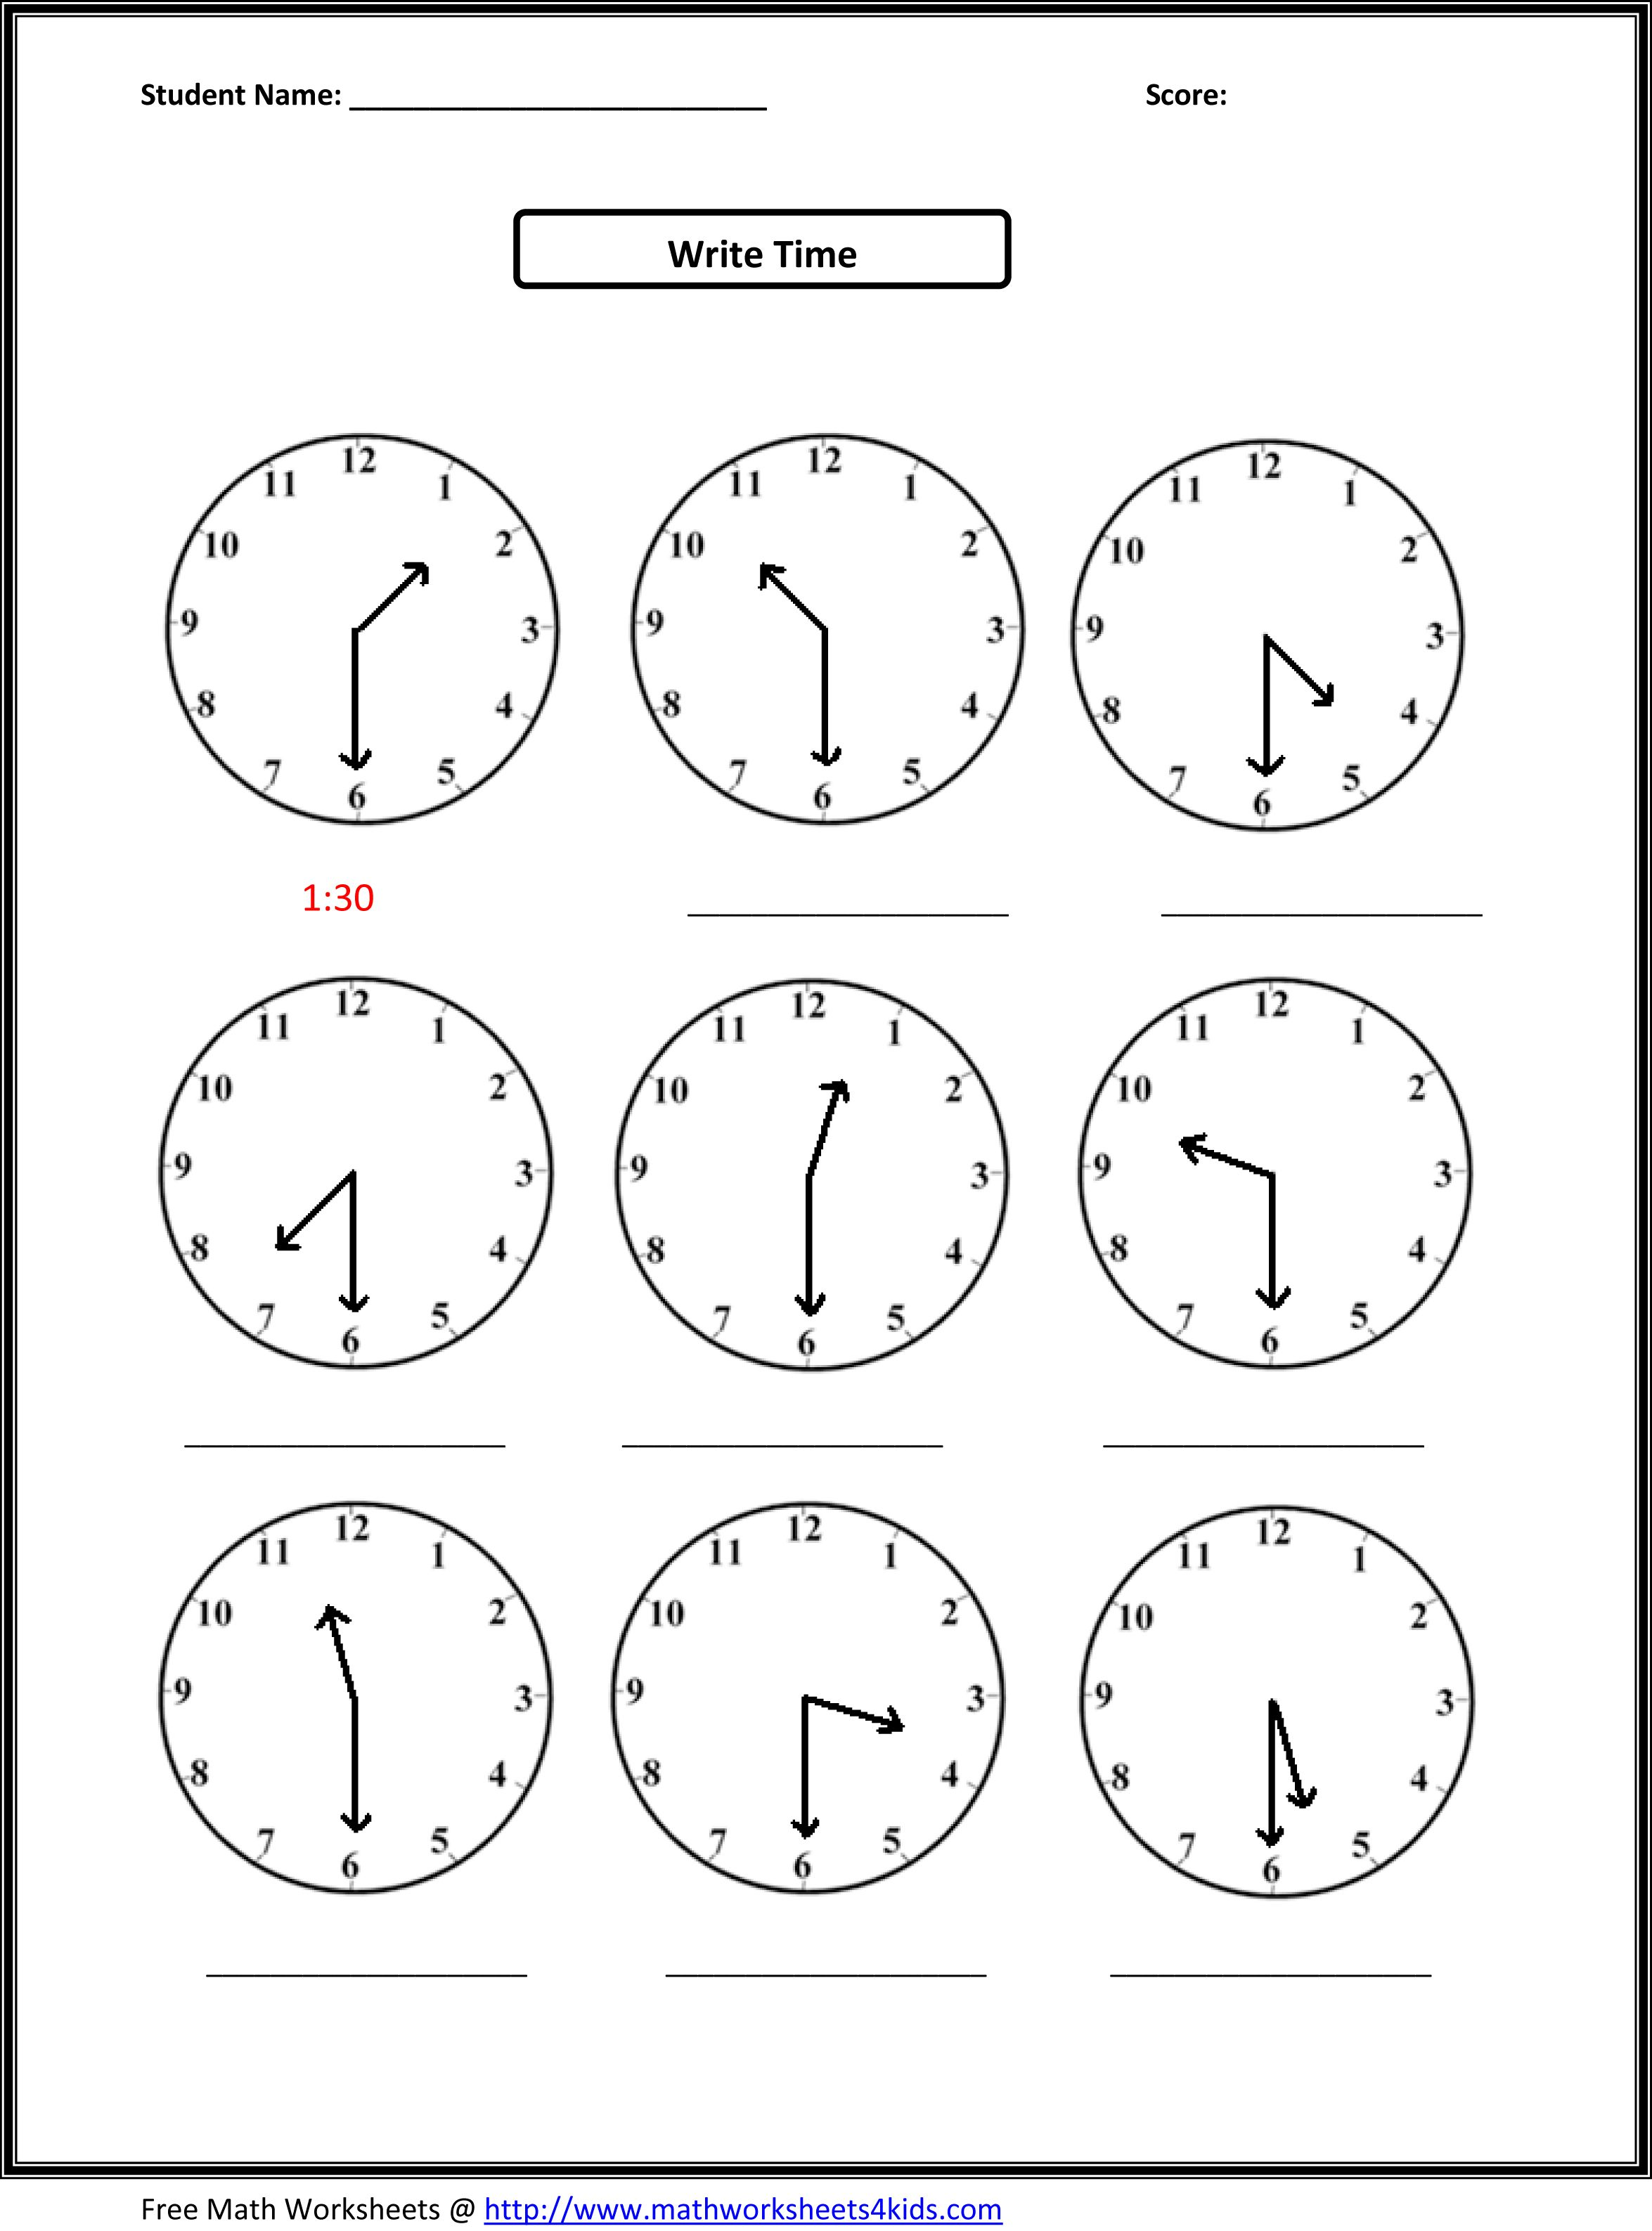 Weirdmailus  Outstanding Worksheet On Time For Grade   Reocurent With Lovely Free Printable Telling Time Worksheets Nd Grade  Reocurent With Extraordinary Silent Gh Worksheets Also Non Mendelian Genetics Worksheet In Addition Negative Self Talk Worksheet And Stoichiometry Worksheet  Percent Yield Answers As Well As Algebraic Proofs Worksheet With Answers Additionally Letter T Worksheet Kindergarten From Reocurentcom With Weirdmailus  Lovely Worksheet On Time For Grade   Reocurent With Extraordinary Free Printable Telling Time Worksheets Nd Grade  Reocurent And Outstanding Silent Gh Worksheets Also Non Mendelian Genetics Worksheet In Addition Negative Self Talk Worksheet From Reocurentcom